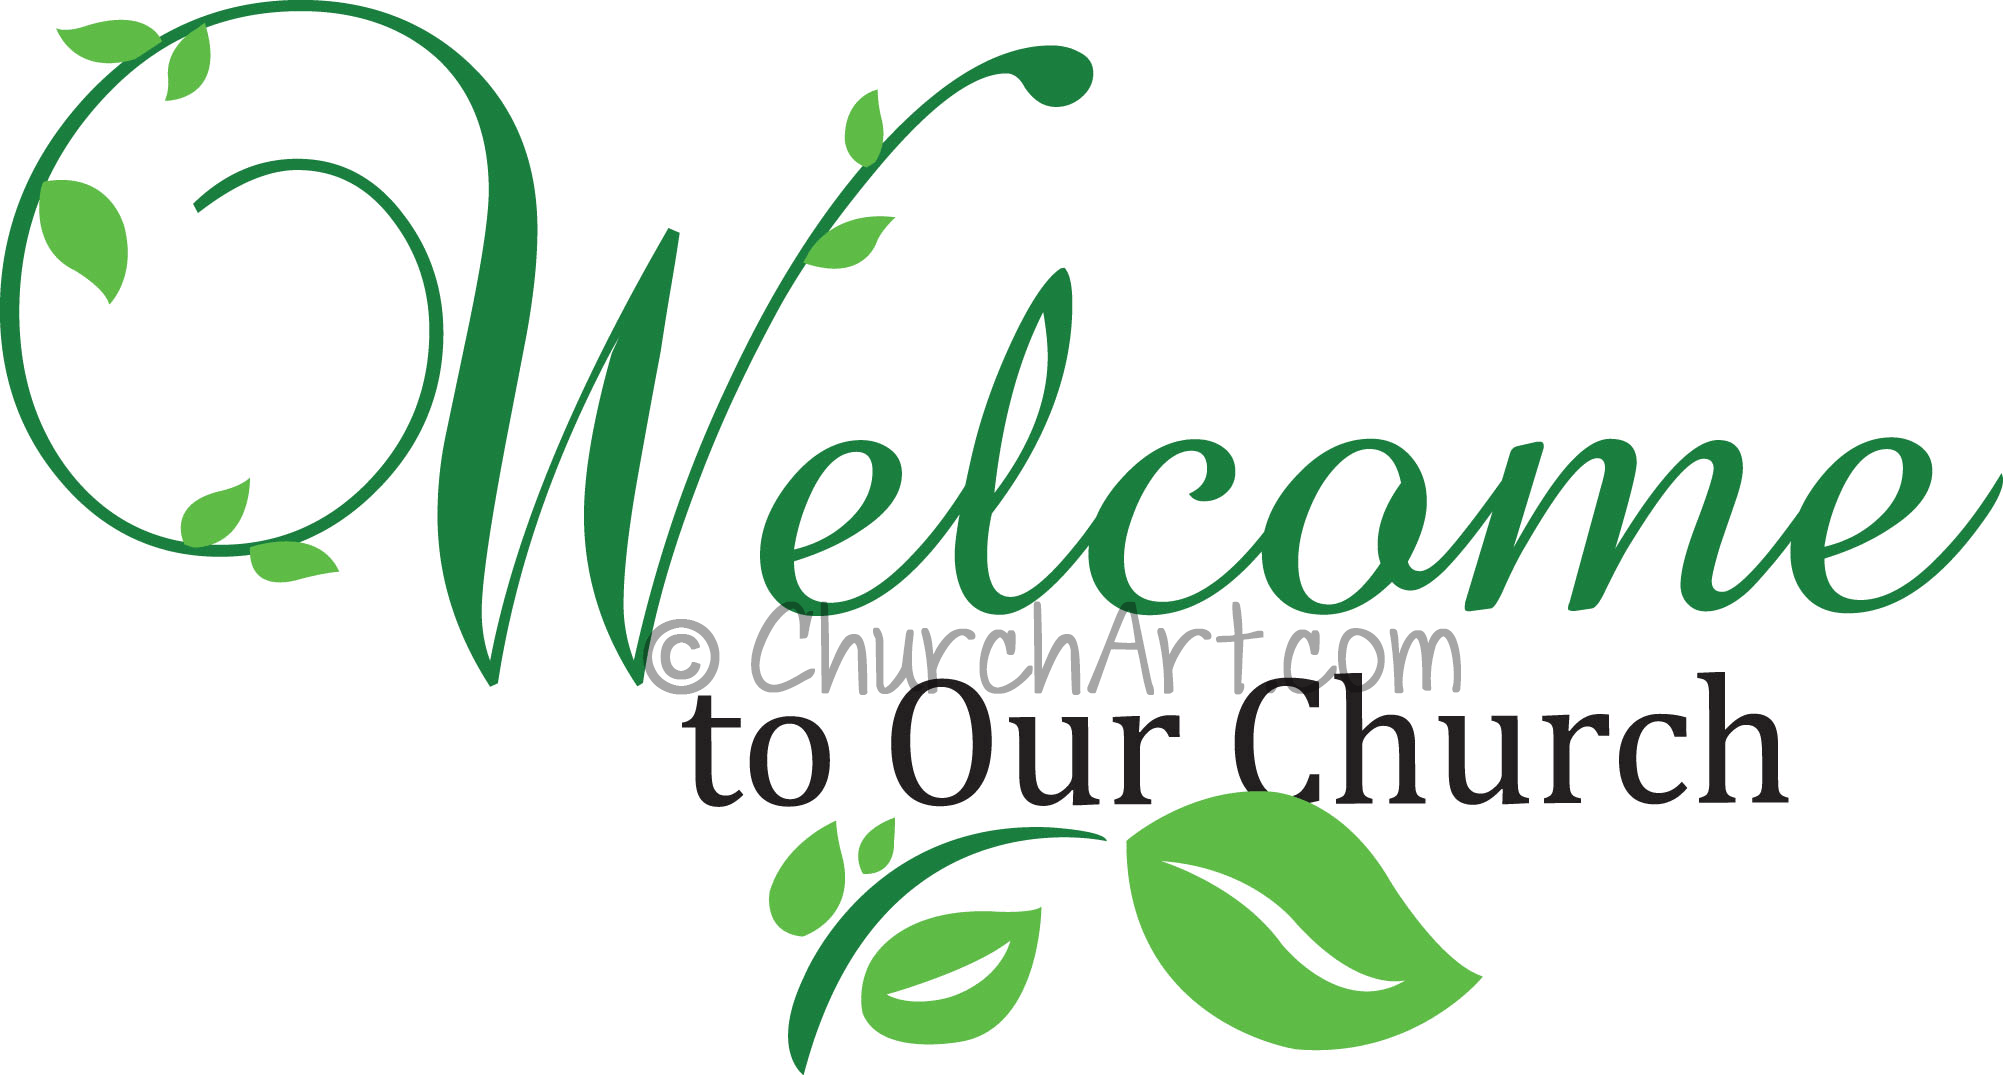 Welcome to our church clipart image for church bulletin or church newsletter welcoming new members to church